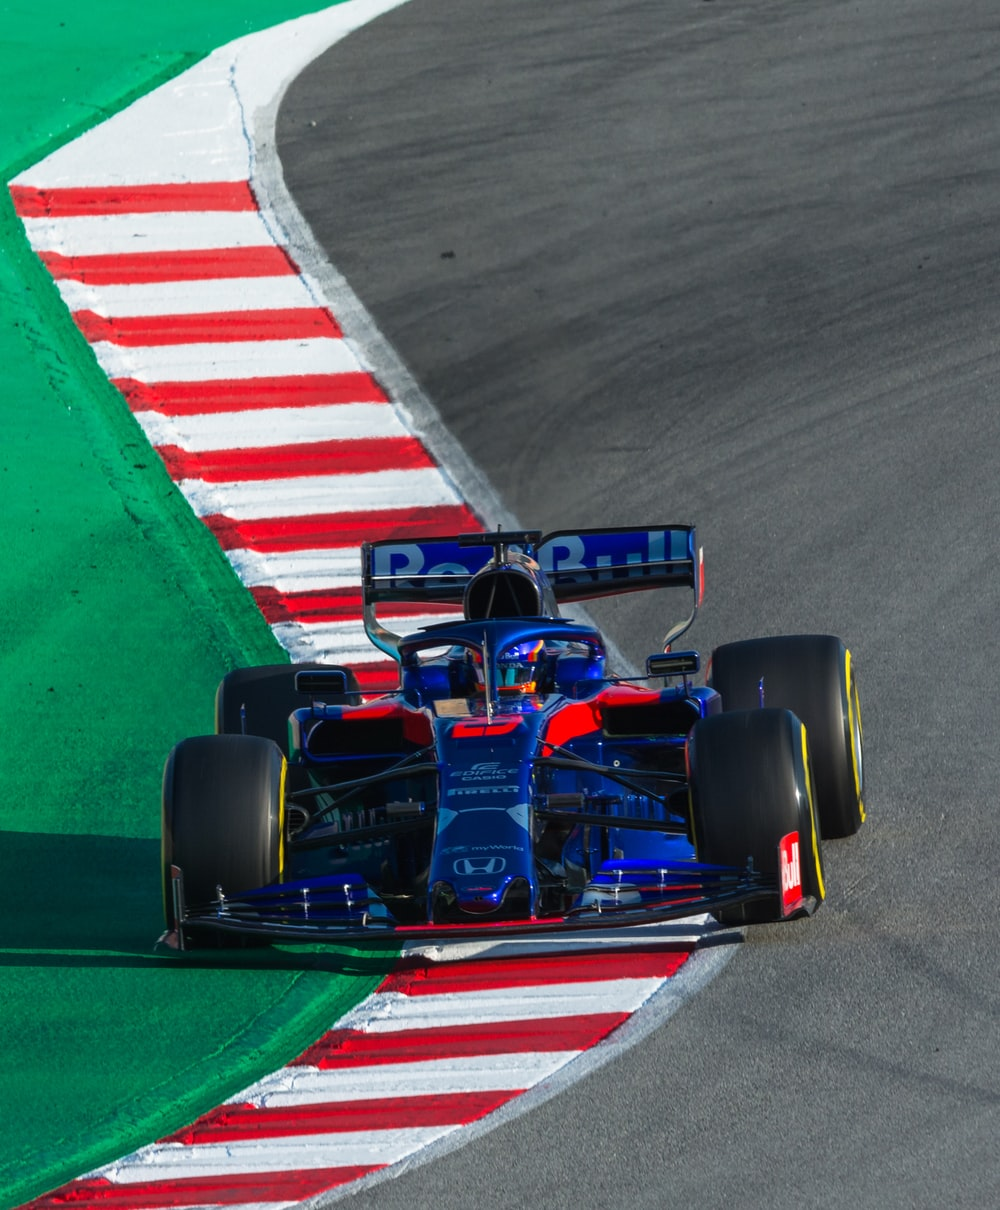 blue F1 car on paved road